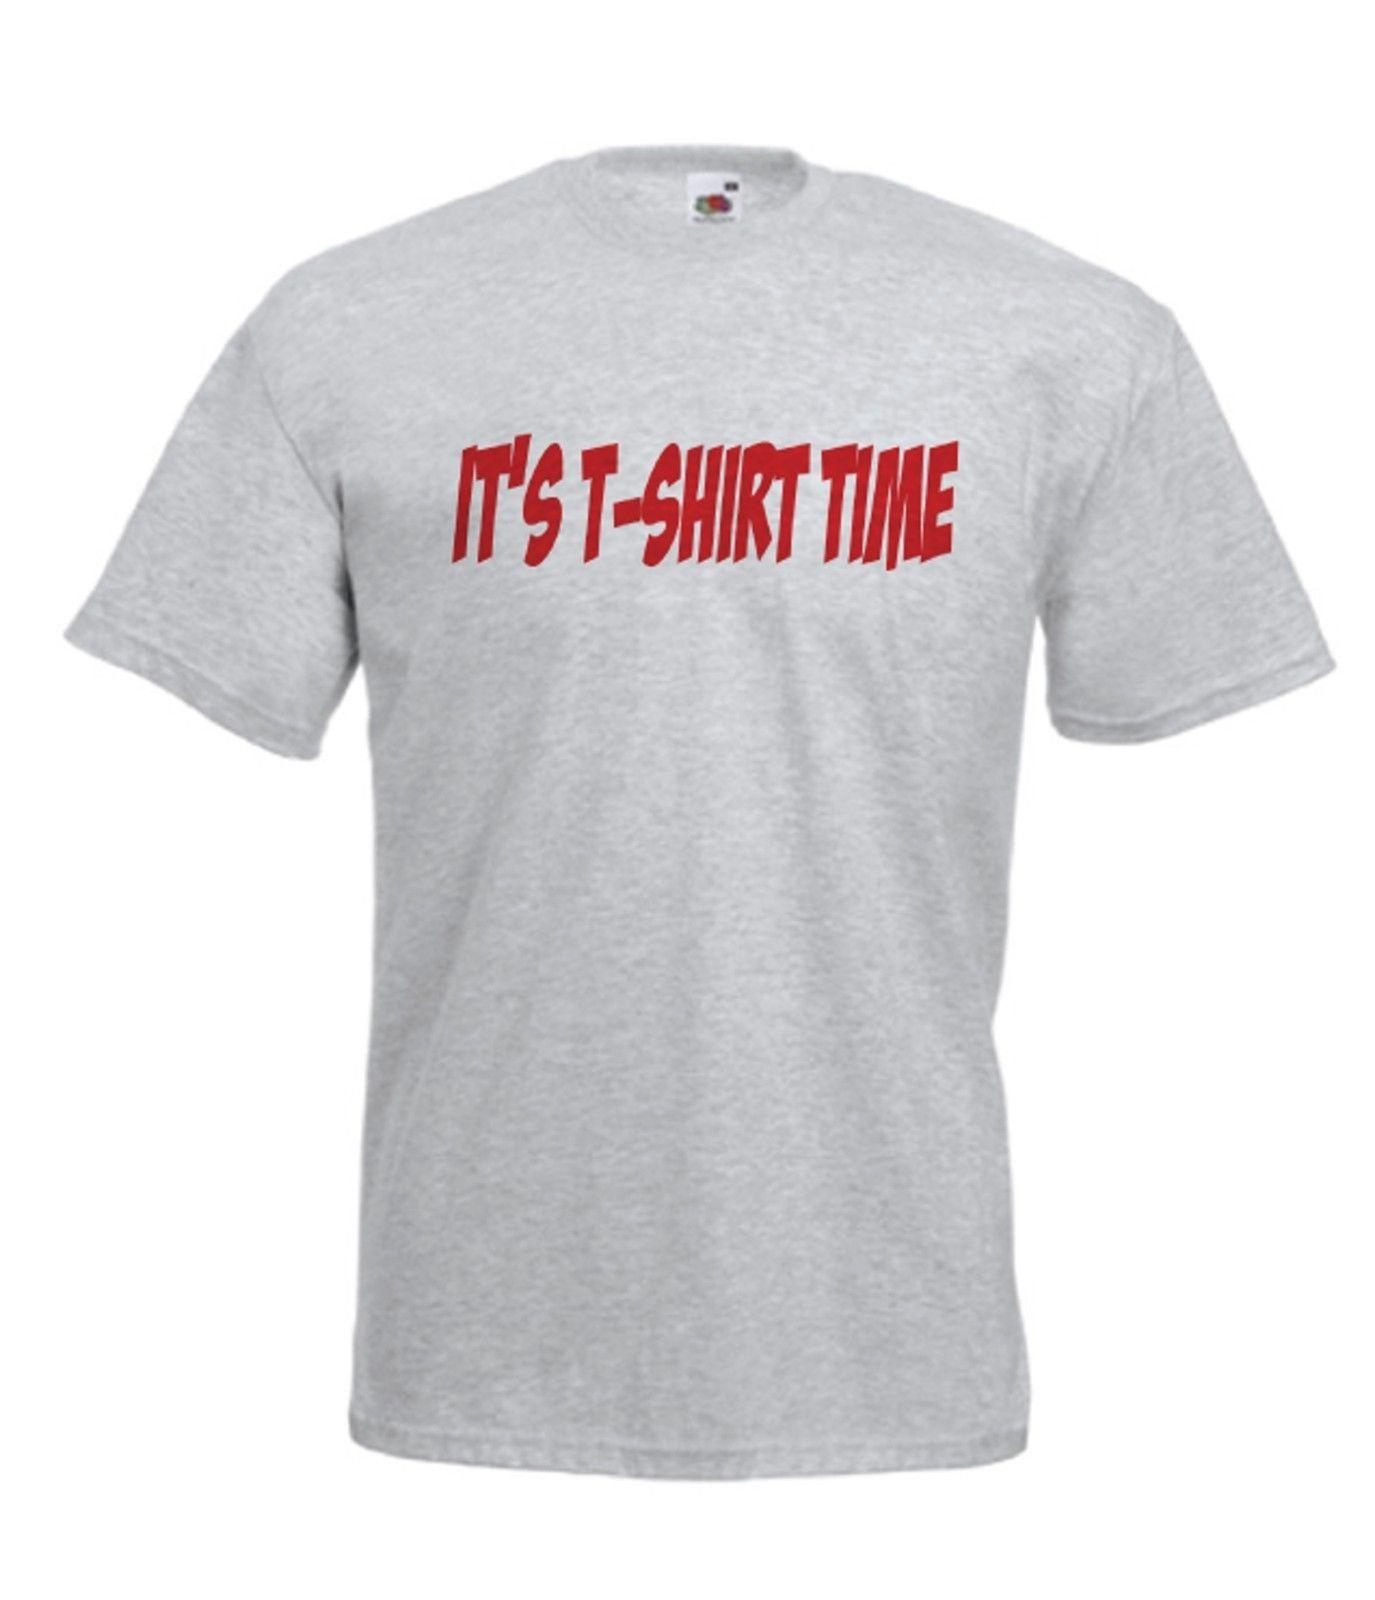 T SHIRT TIME funny holiday xmas birthday party gift idea mens womens adult TOP